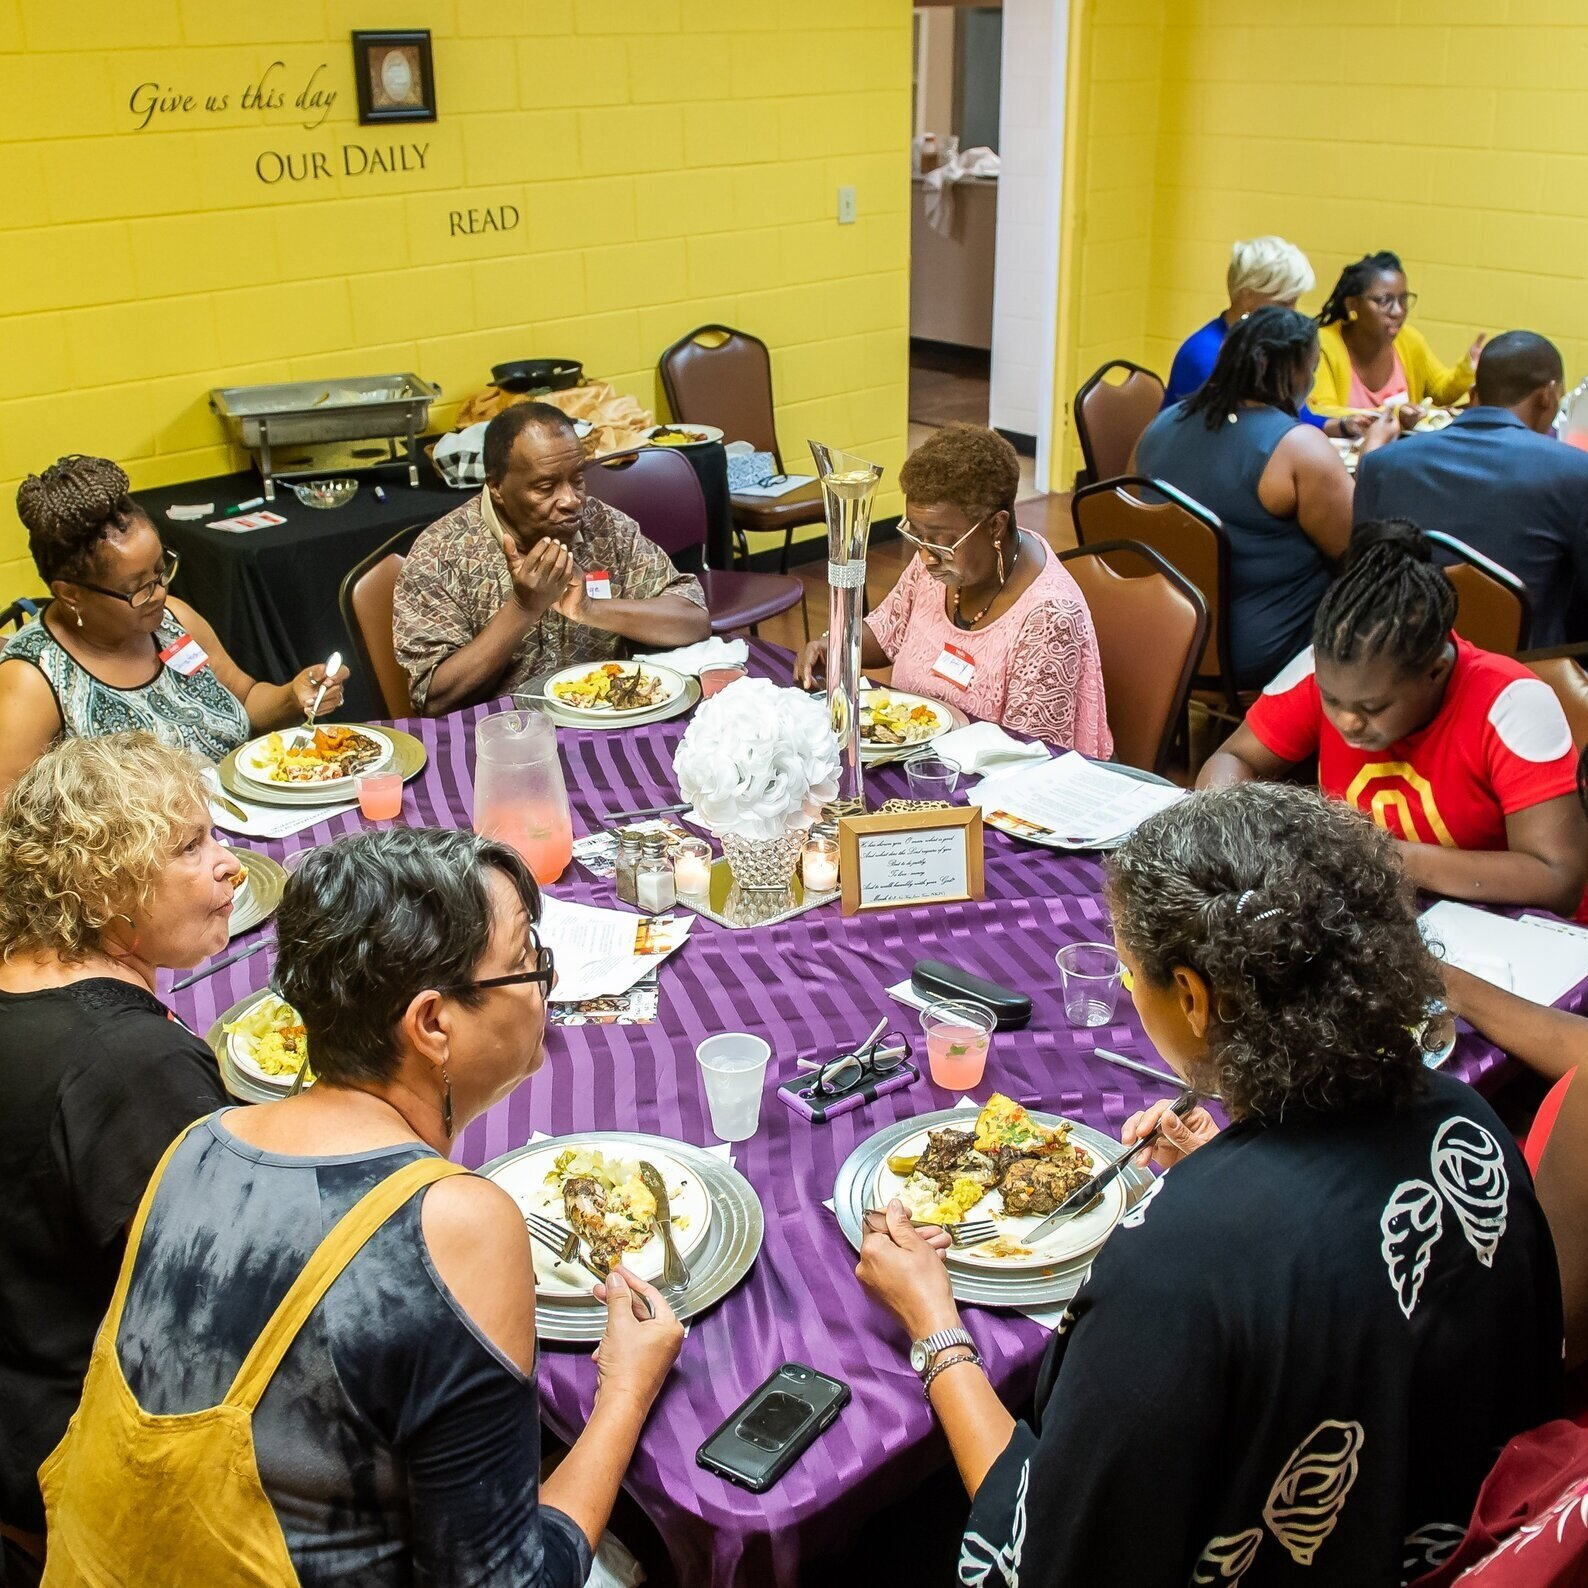 Community members in Decatur, GA meet regularly to talk and get to know each other during Decatur Dinners